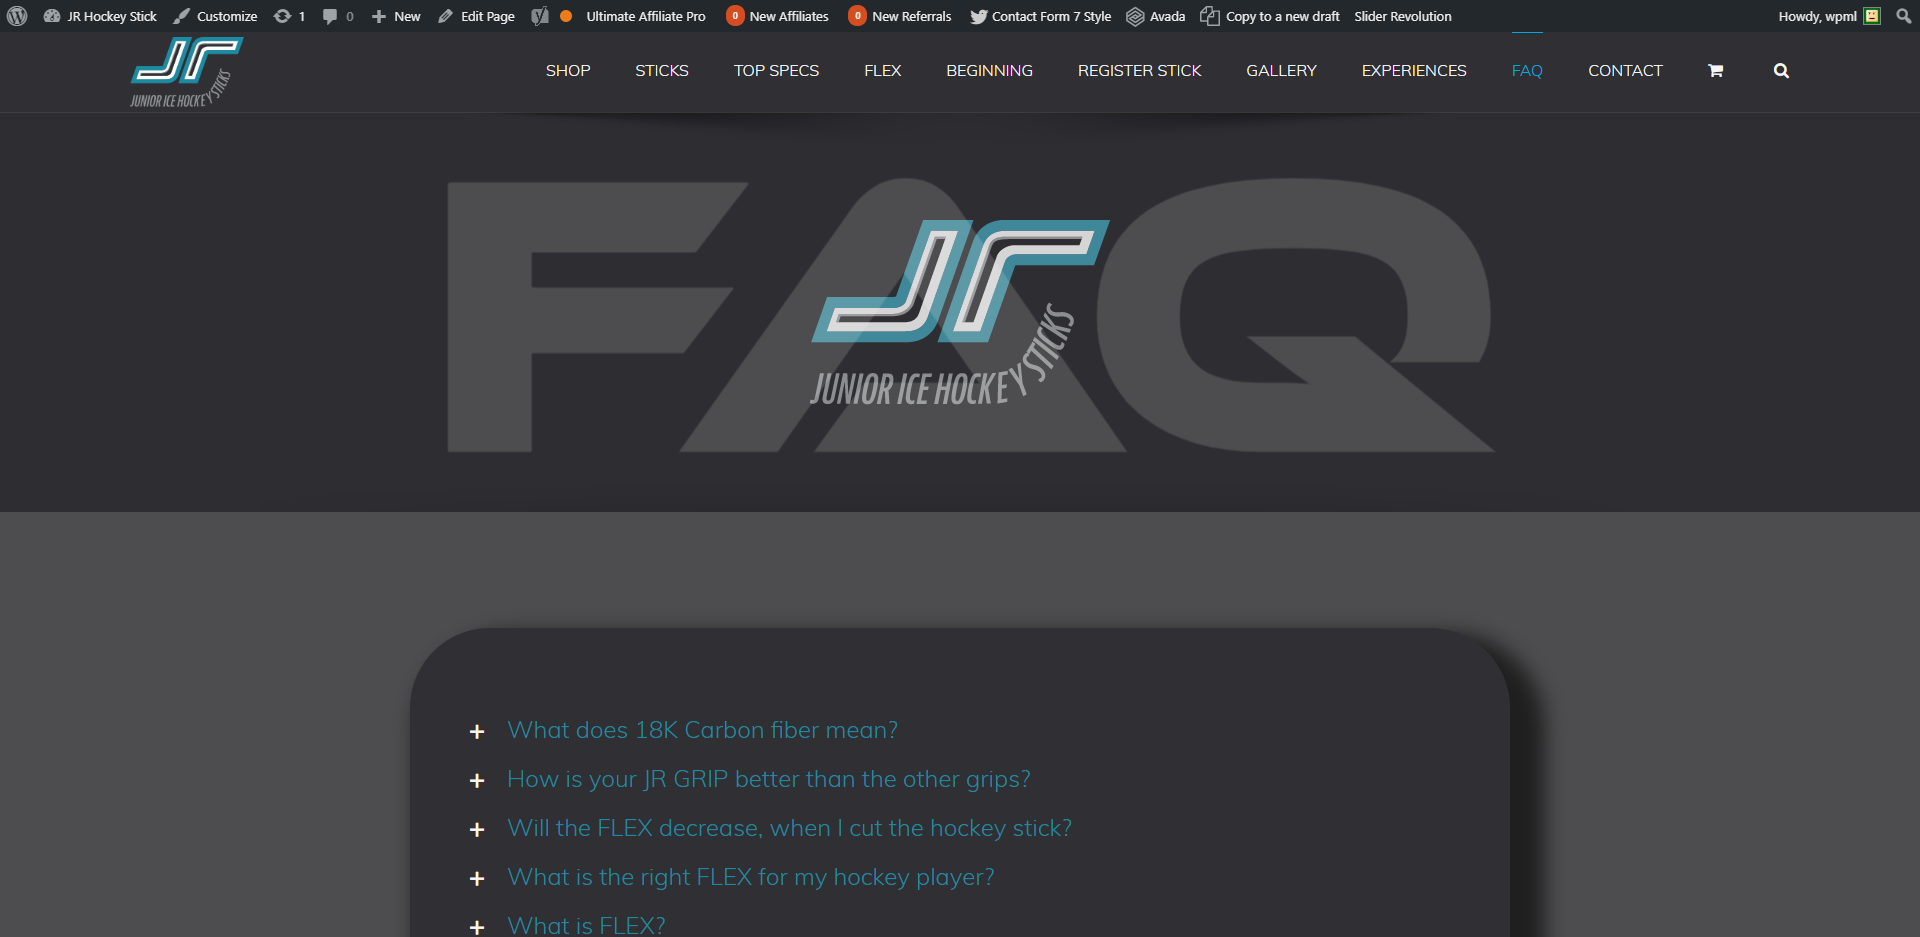 FireShot Capture 704 - Common Questions & Answers - JR Hockey Stick - www.jrhockey.co.png